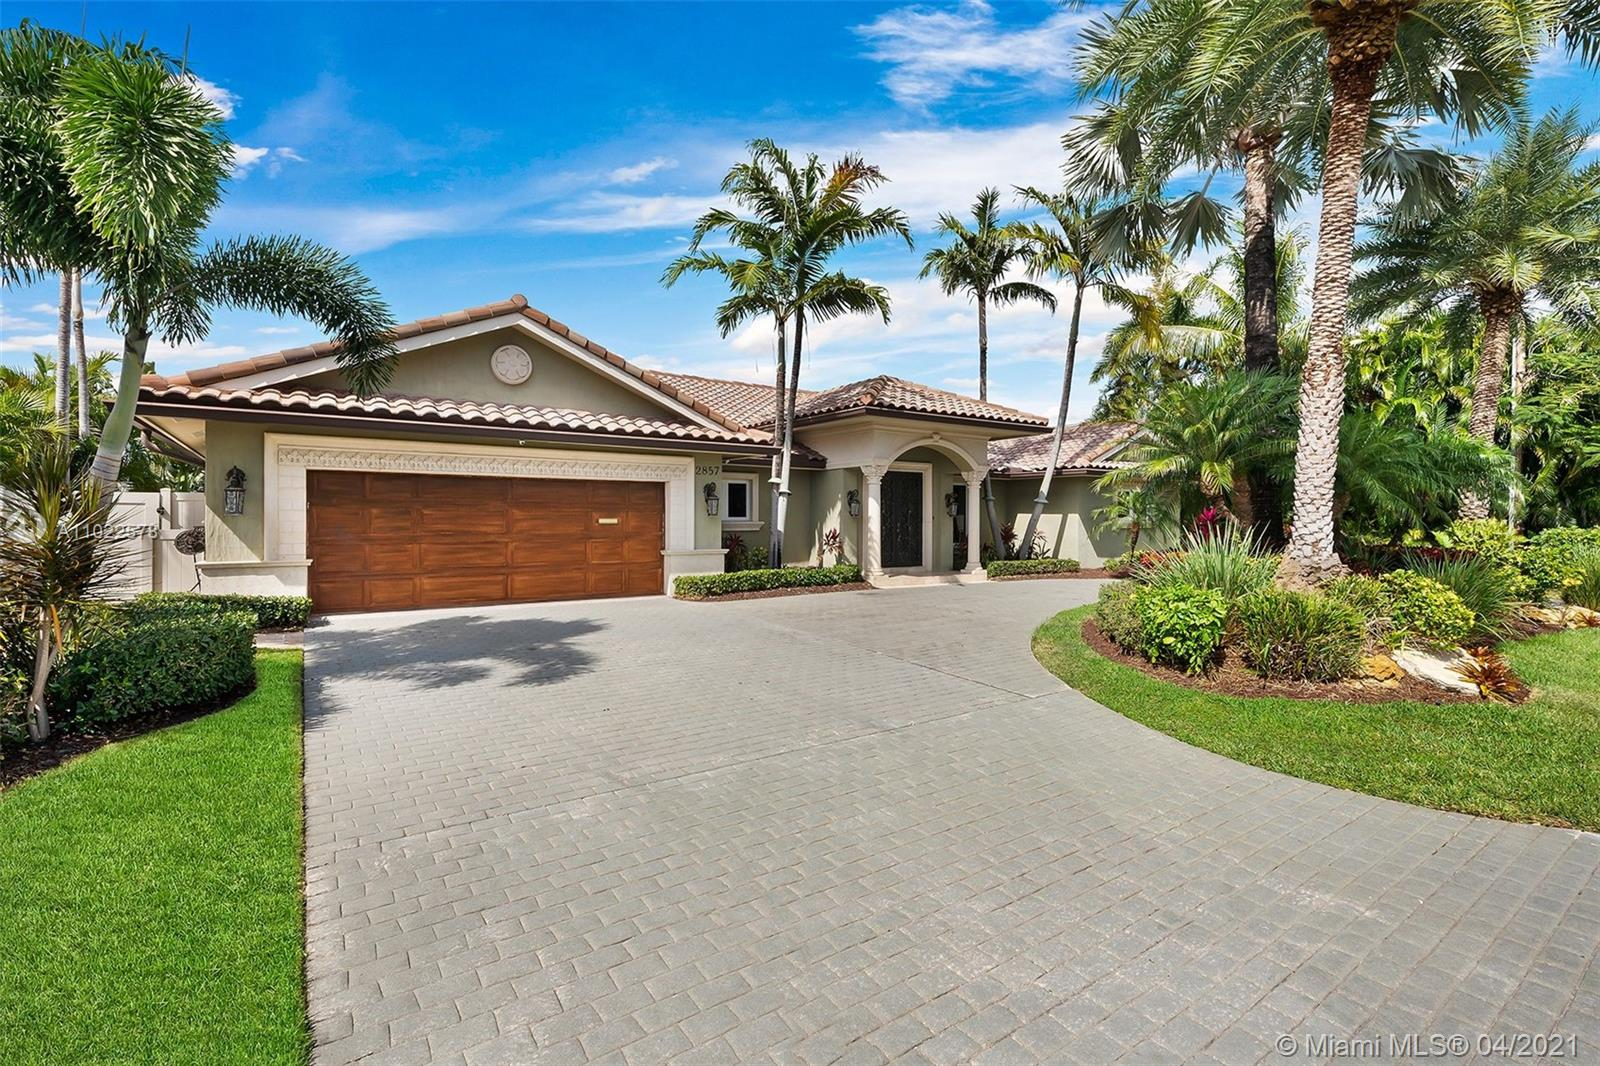 Coral Ridge Country Club - 2857 NE 36th St, Fort Lauderdale, FL 33308